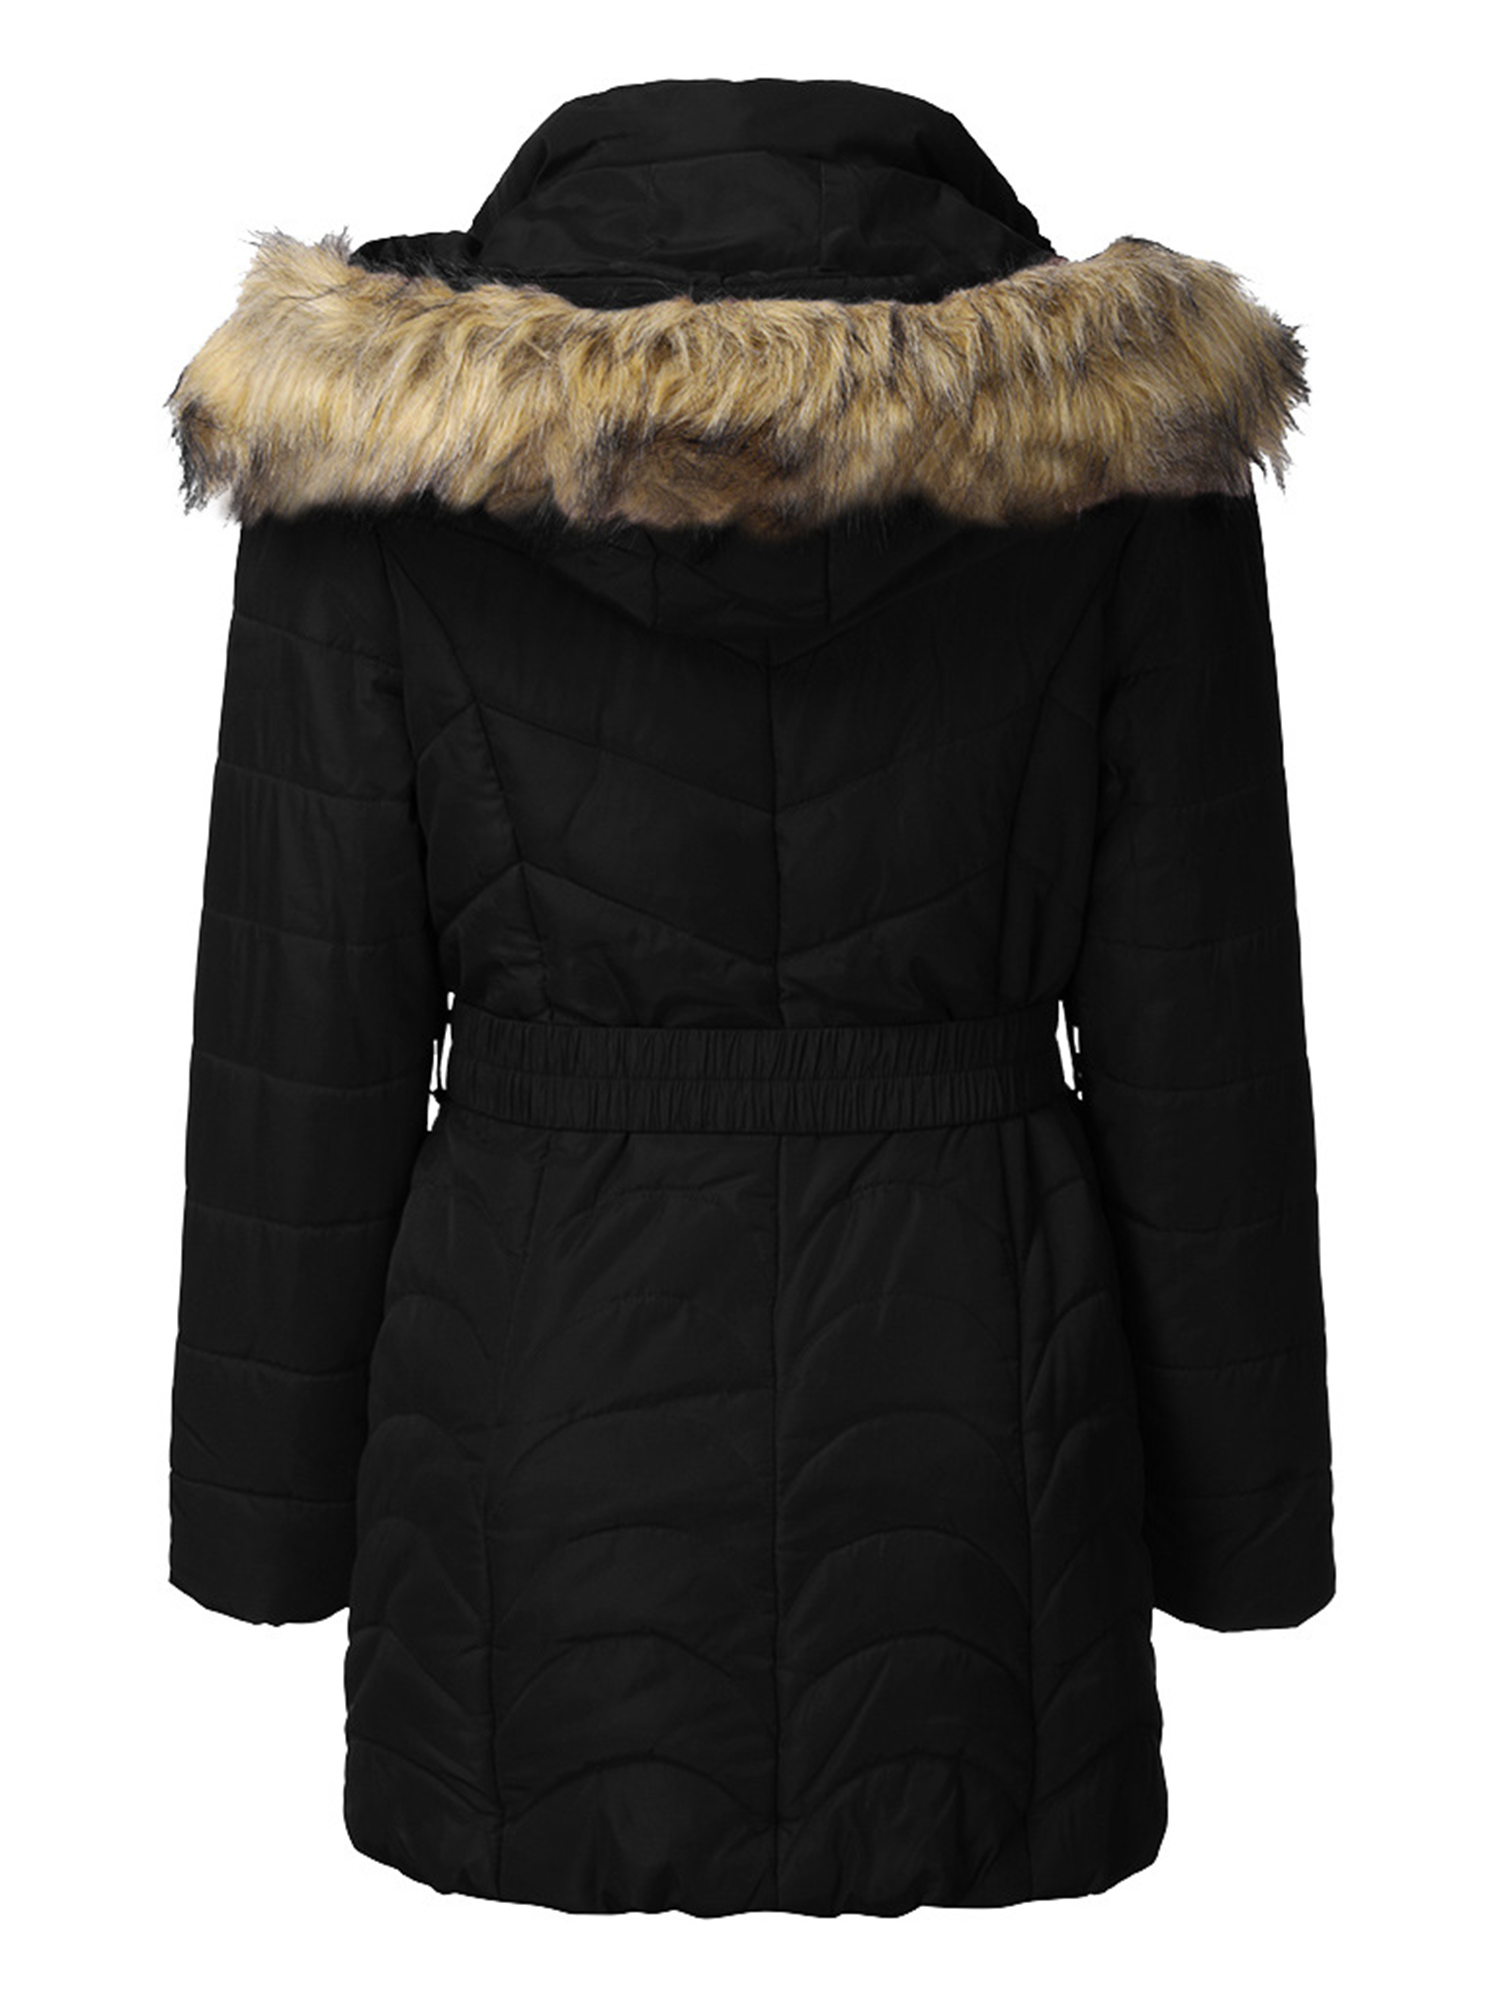 Details about  /Kids Boys Hooded Puffer Warm Coat Faux Fur Padded Jackets Thick Winter Outwear